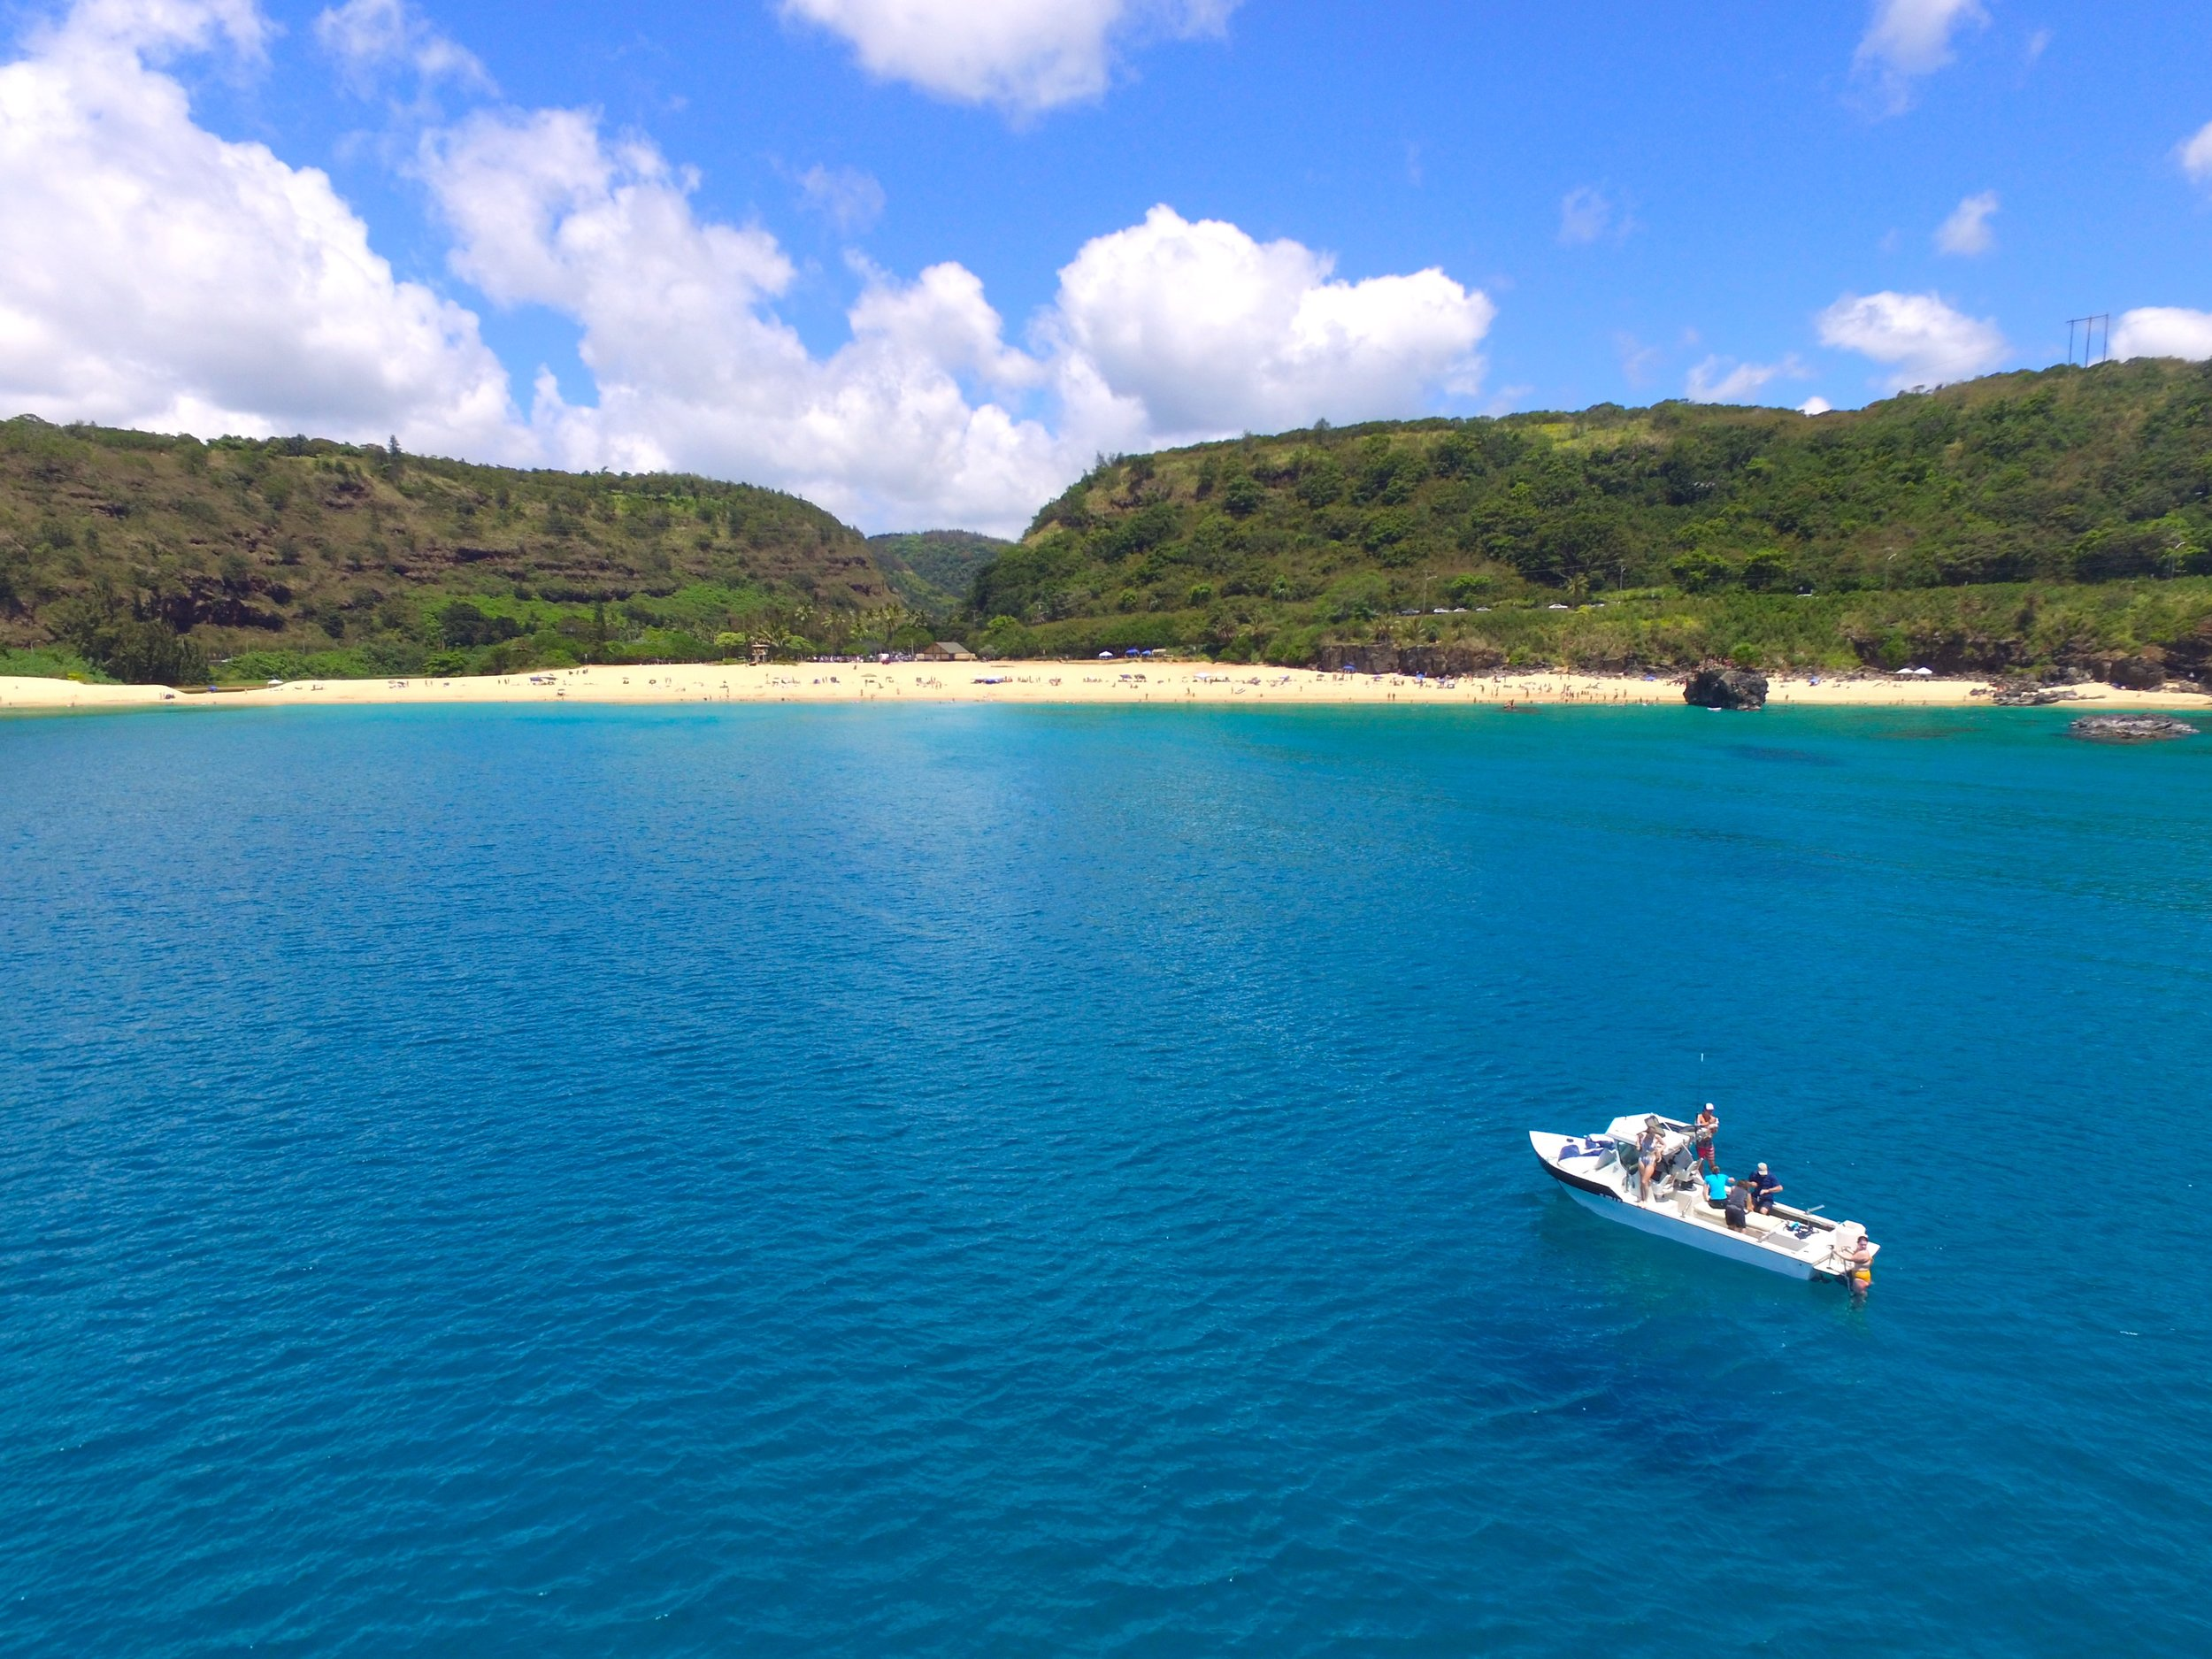 kaʻapuni Pilikino - Want the luxury and privacy of your own guided tour to do whatever you please? We offer private tours of the coastline to pristine snorkeling destinations, wildlife tours, coastal cruises, you name it we can provide.